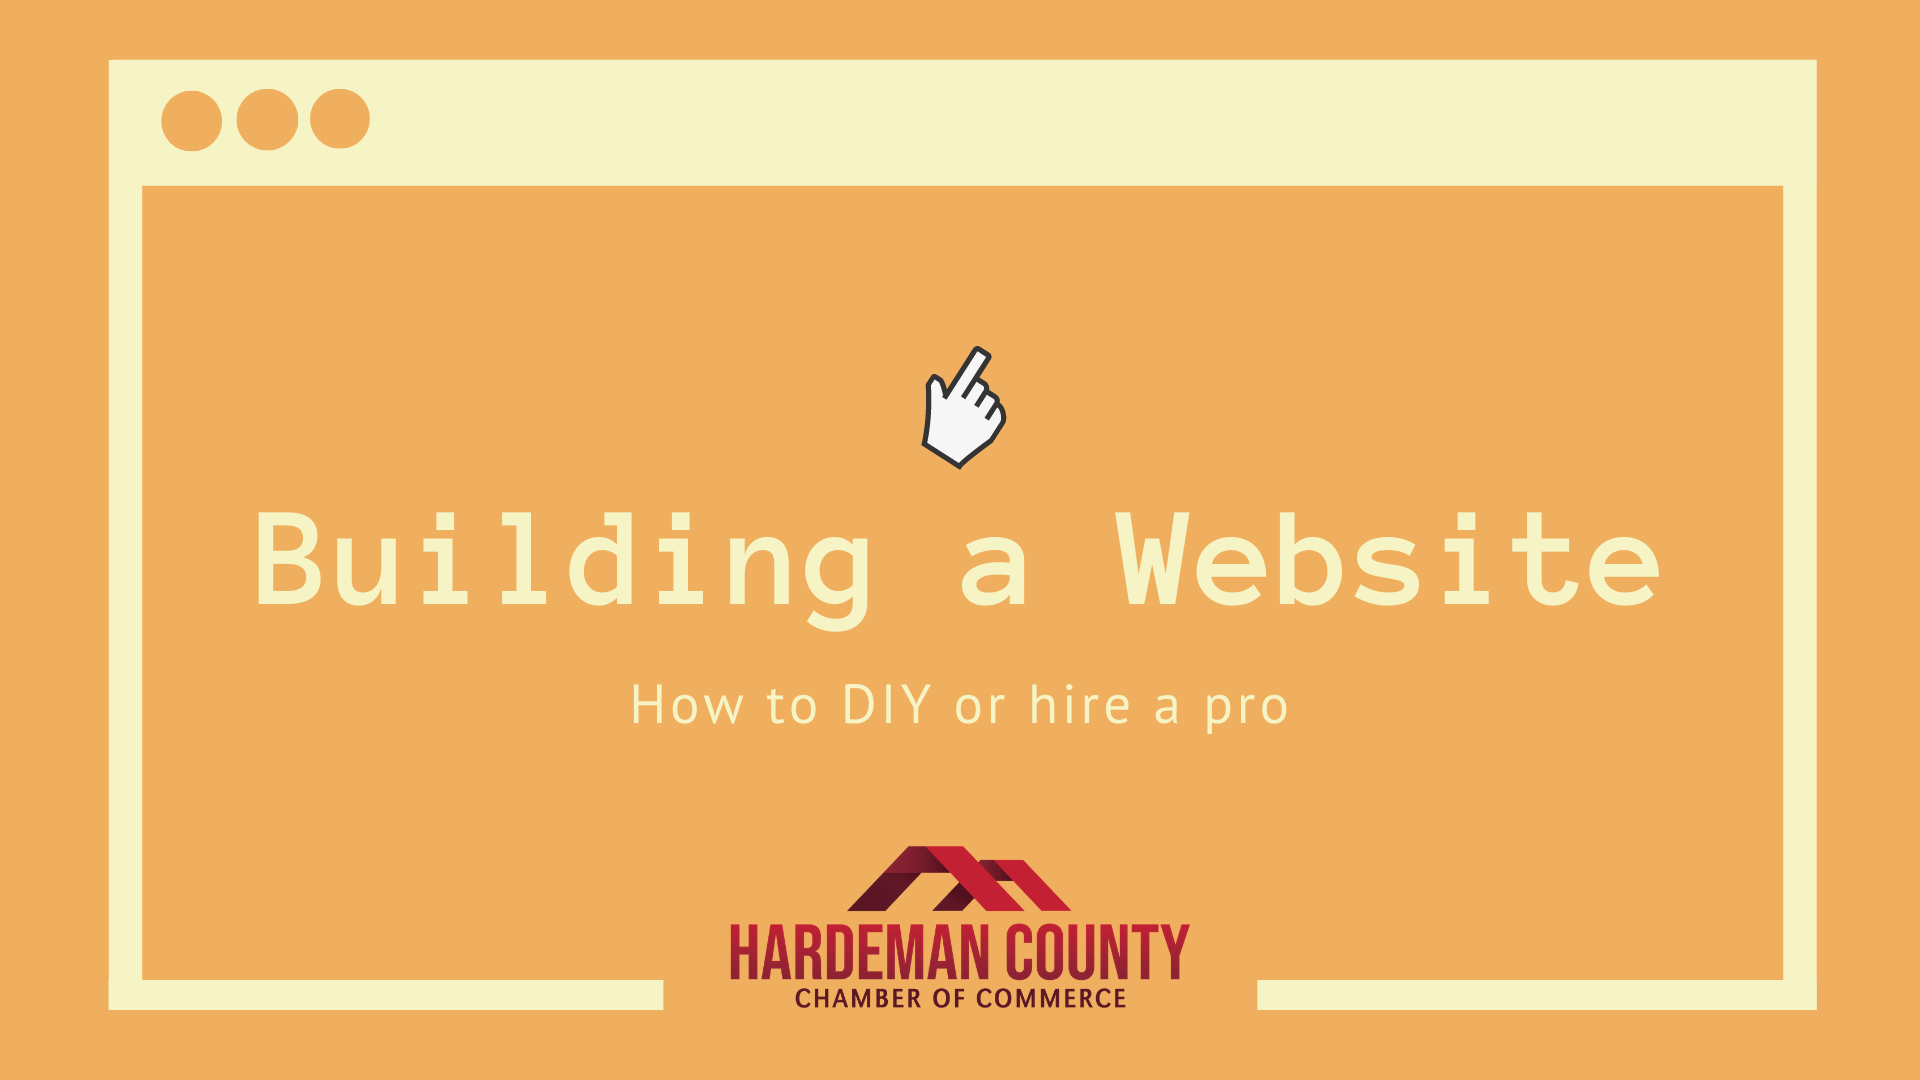 Building a Website: How to DIY or hire a pro - Hardeman County ...